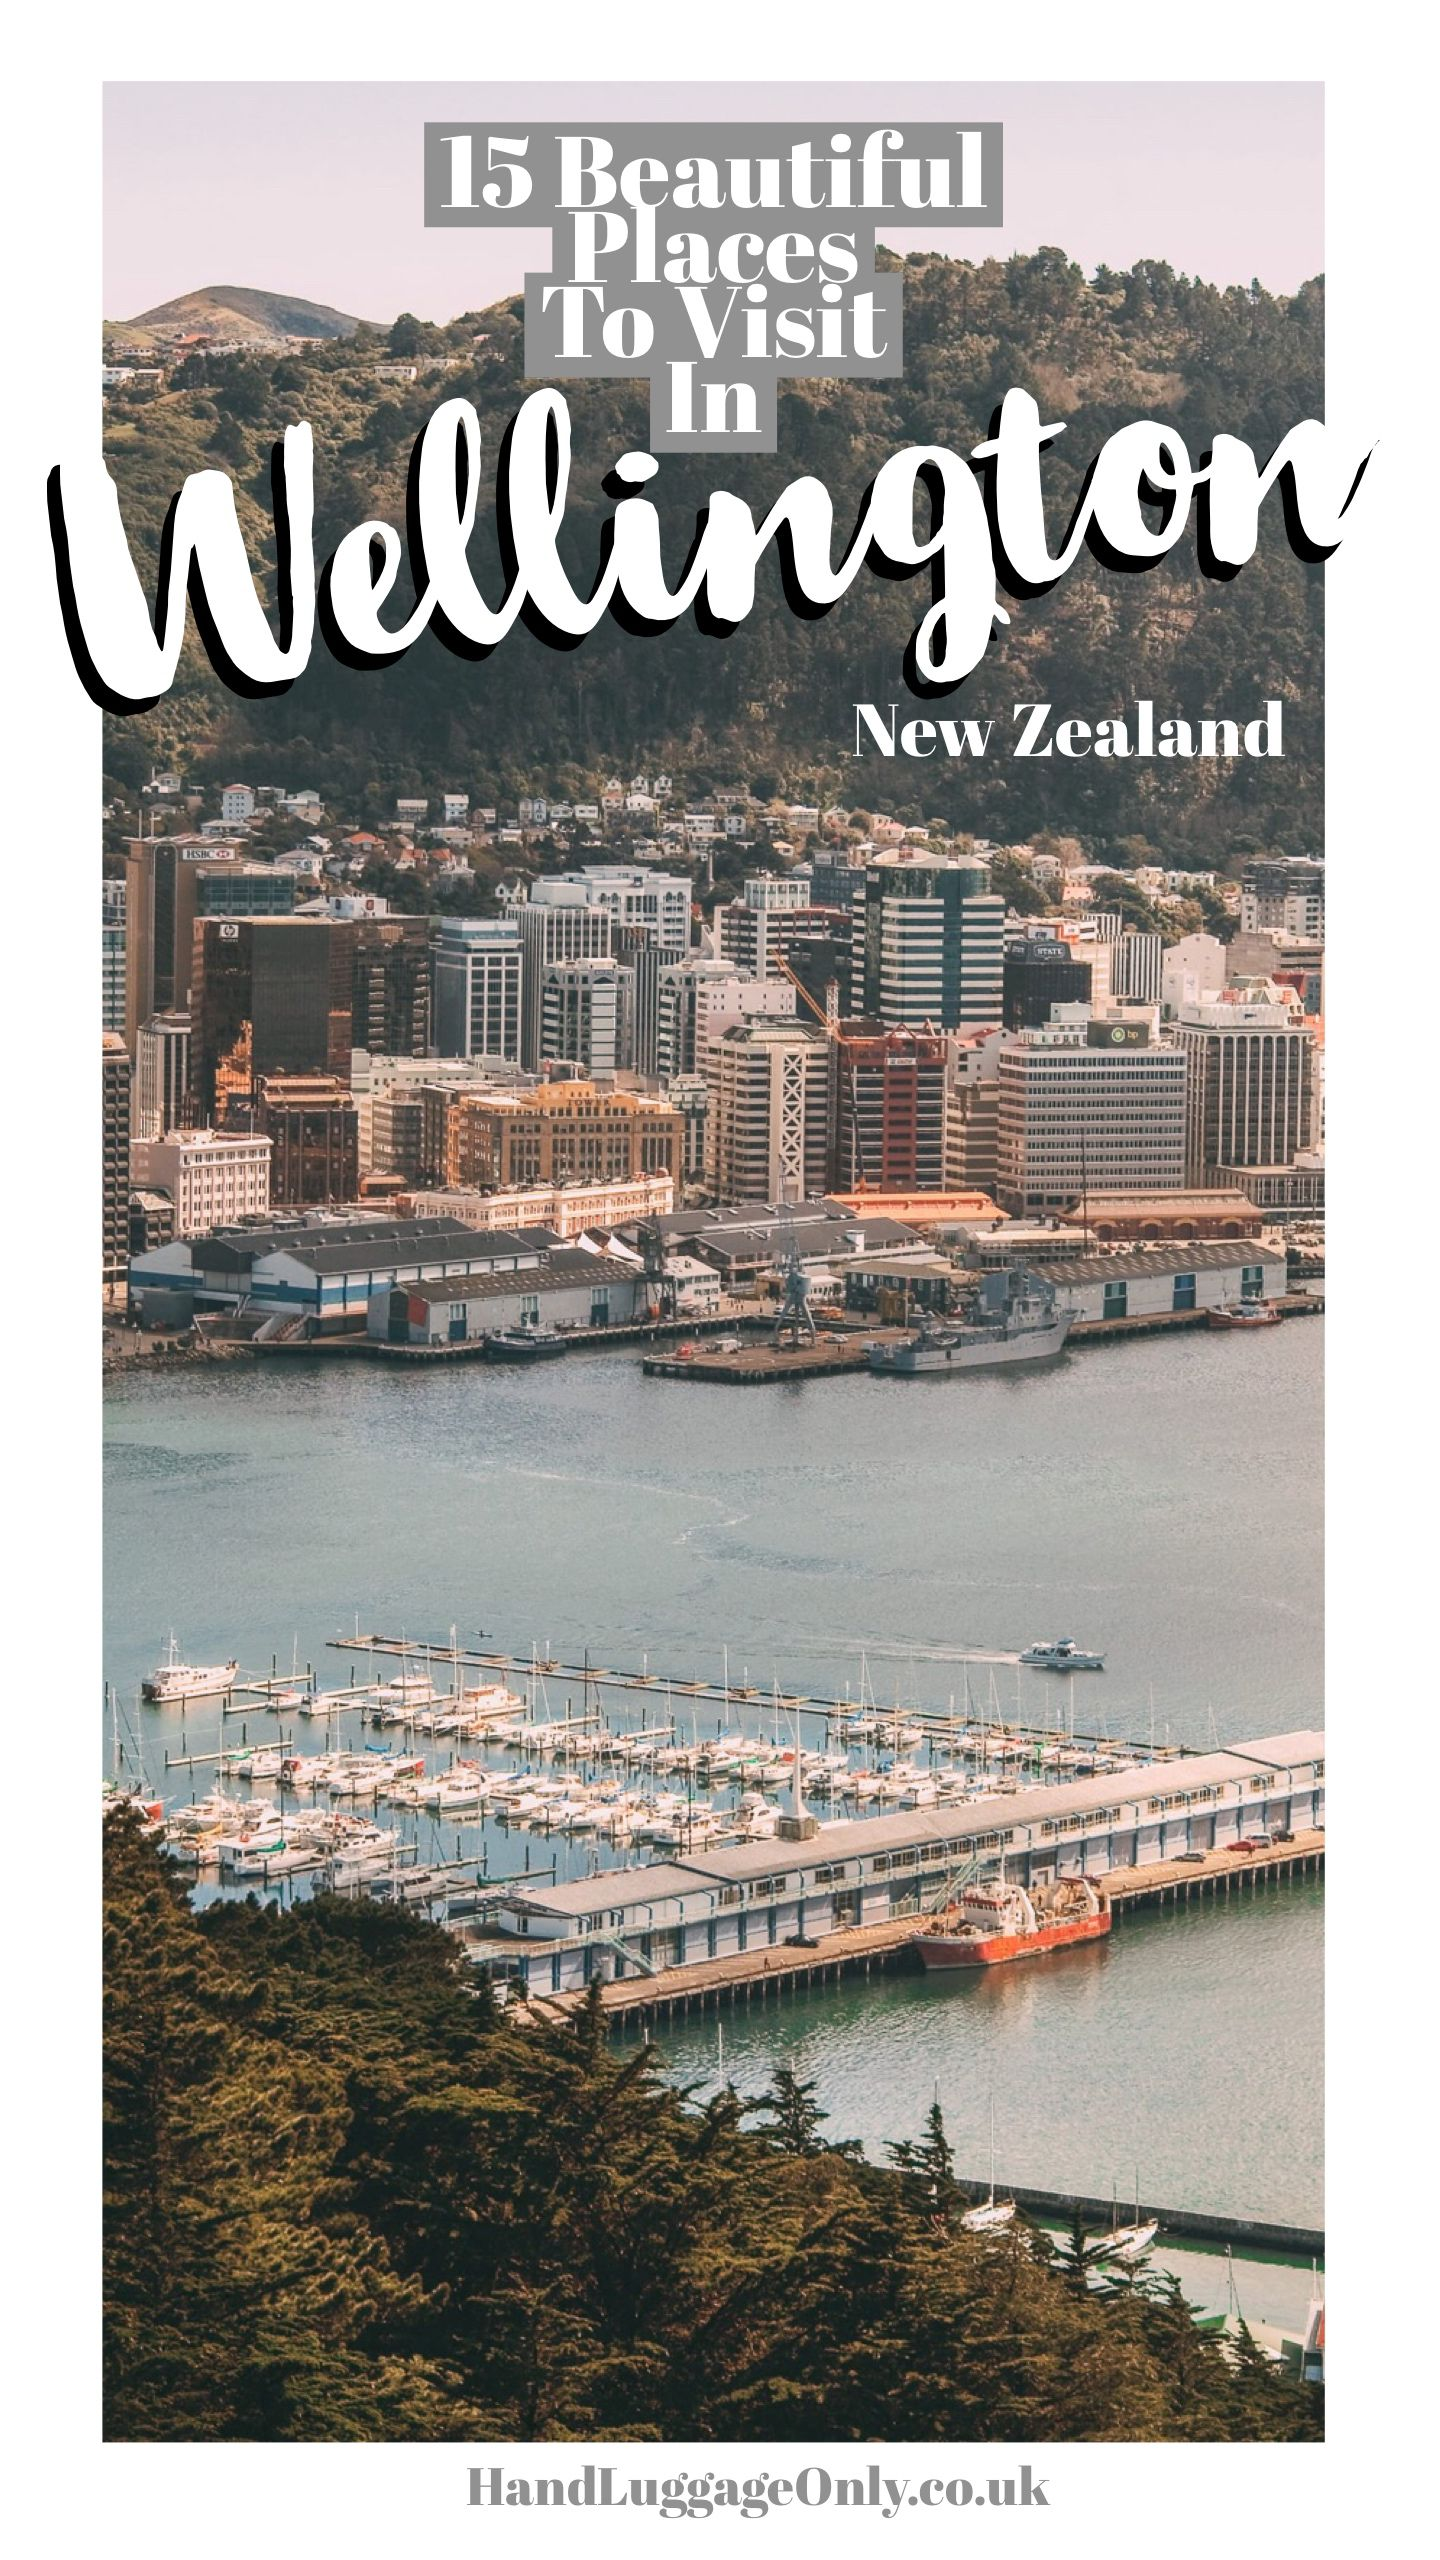 15 Things To Do In Wellington, New Zealand (1)